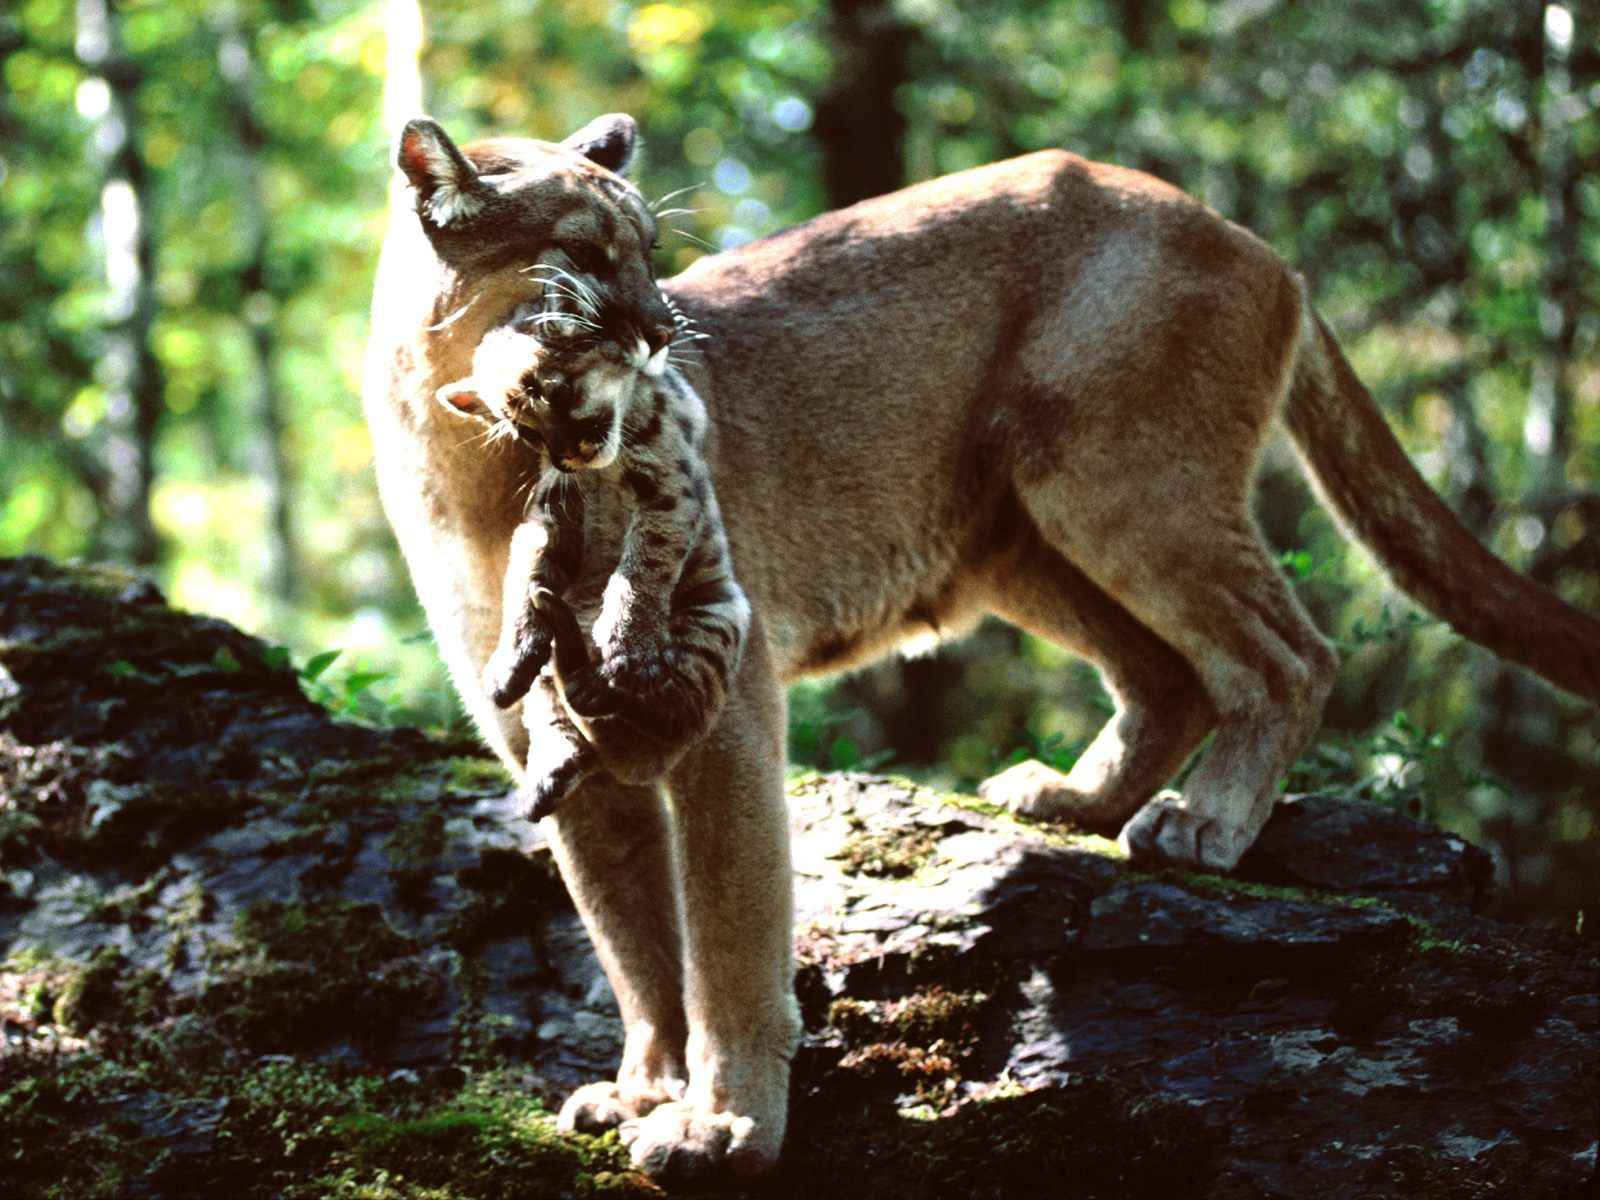 Mountain animals pictures - photo#1